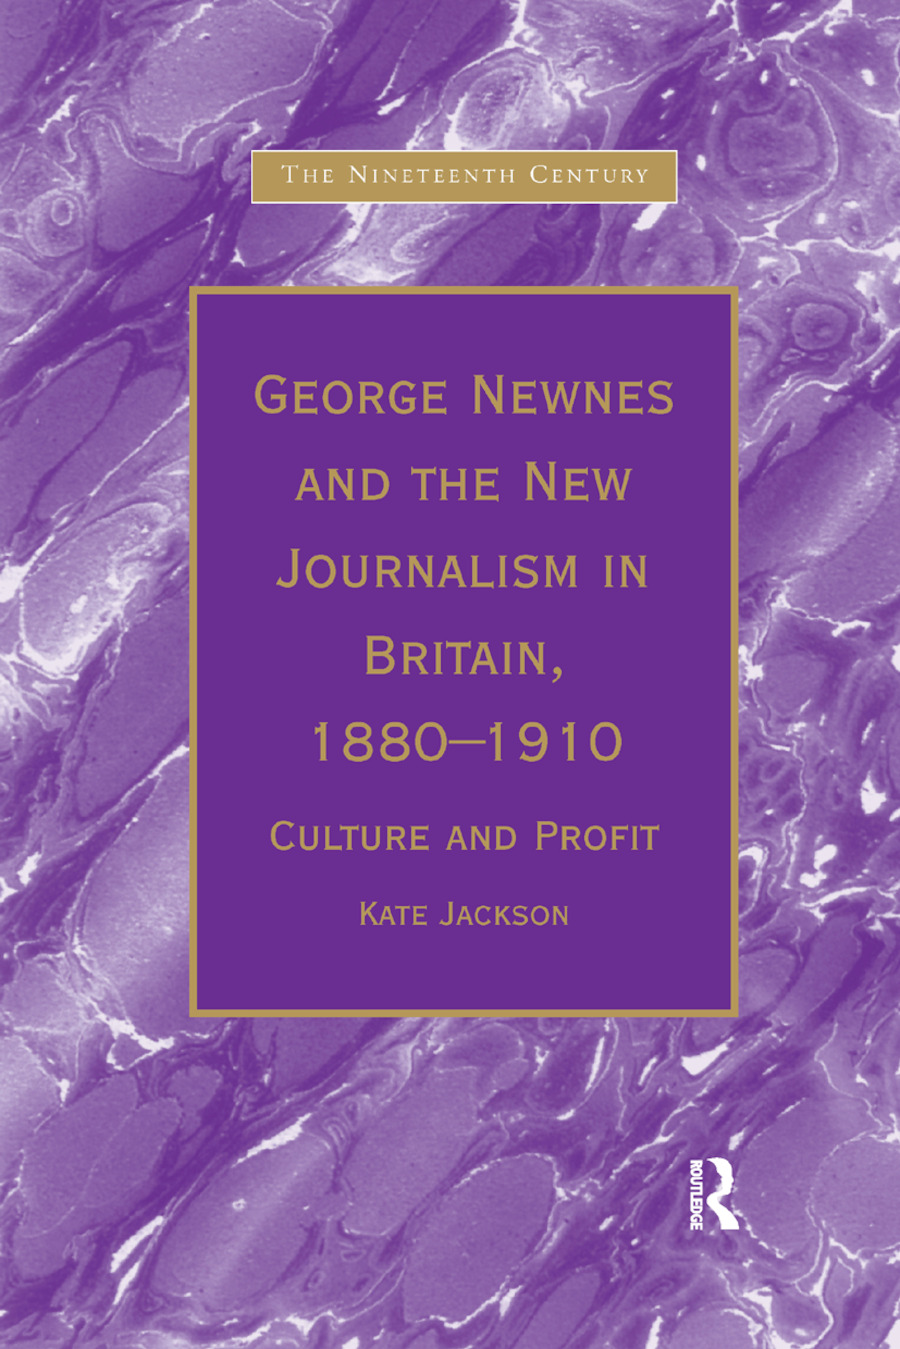 George Newnes and the New Journalism in Britain, 1880�1910: Culture and Profit, 1st Edition (Paperback) book cover